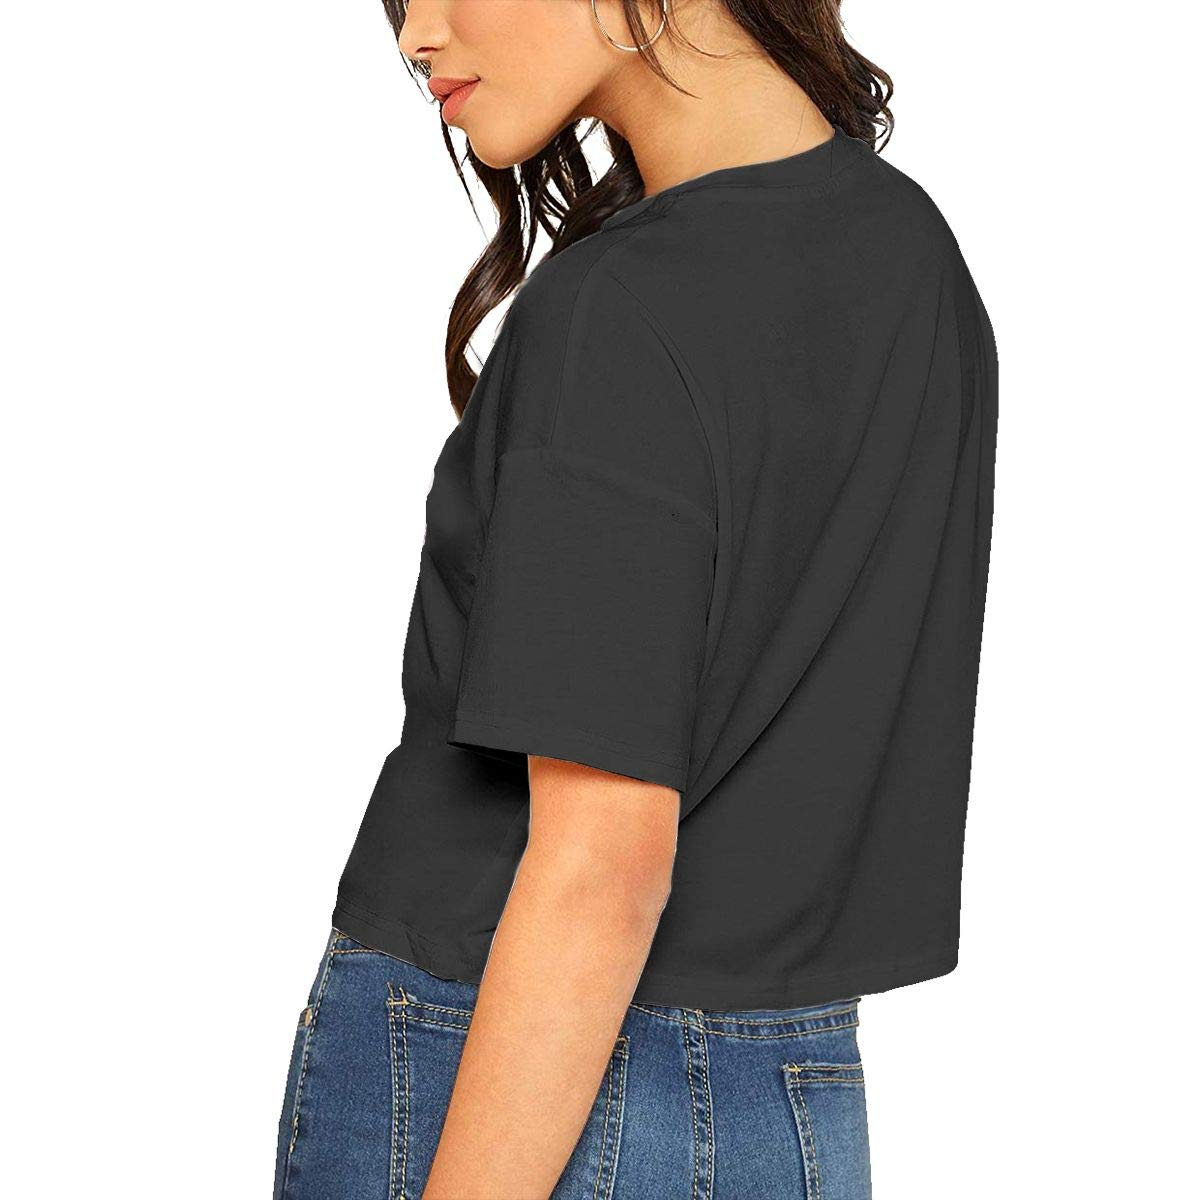 Qmad Womens Beautiful Cake Crop Top T-Shirts Freestyle Short Style Design Casual Relaxed Short-Sleeve Comfortable Tee Top Black